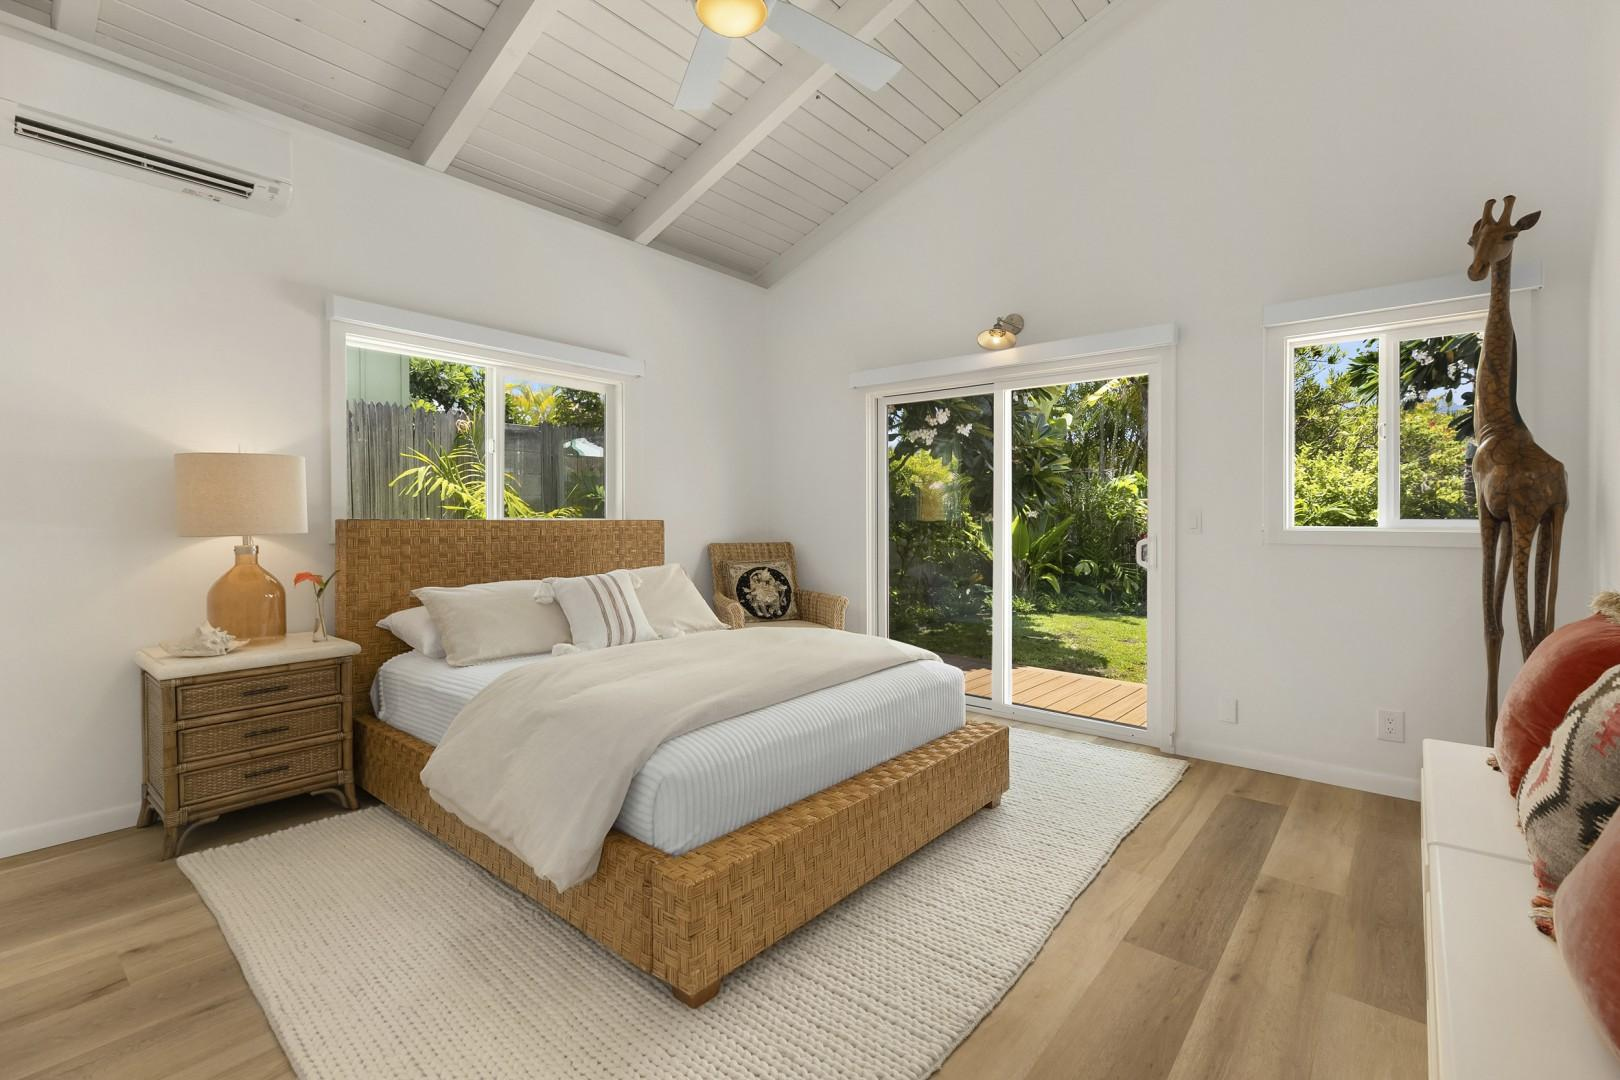 Master bedroom with private access  to main lanai and garden area, Split A/C, and access too Outdoor Shower.